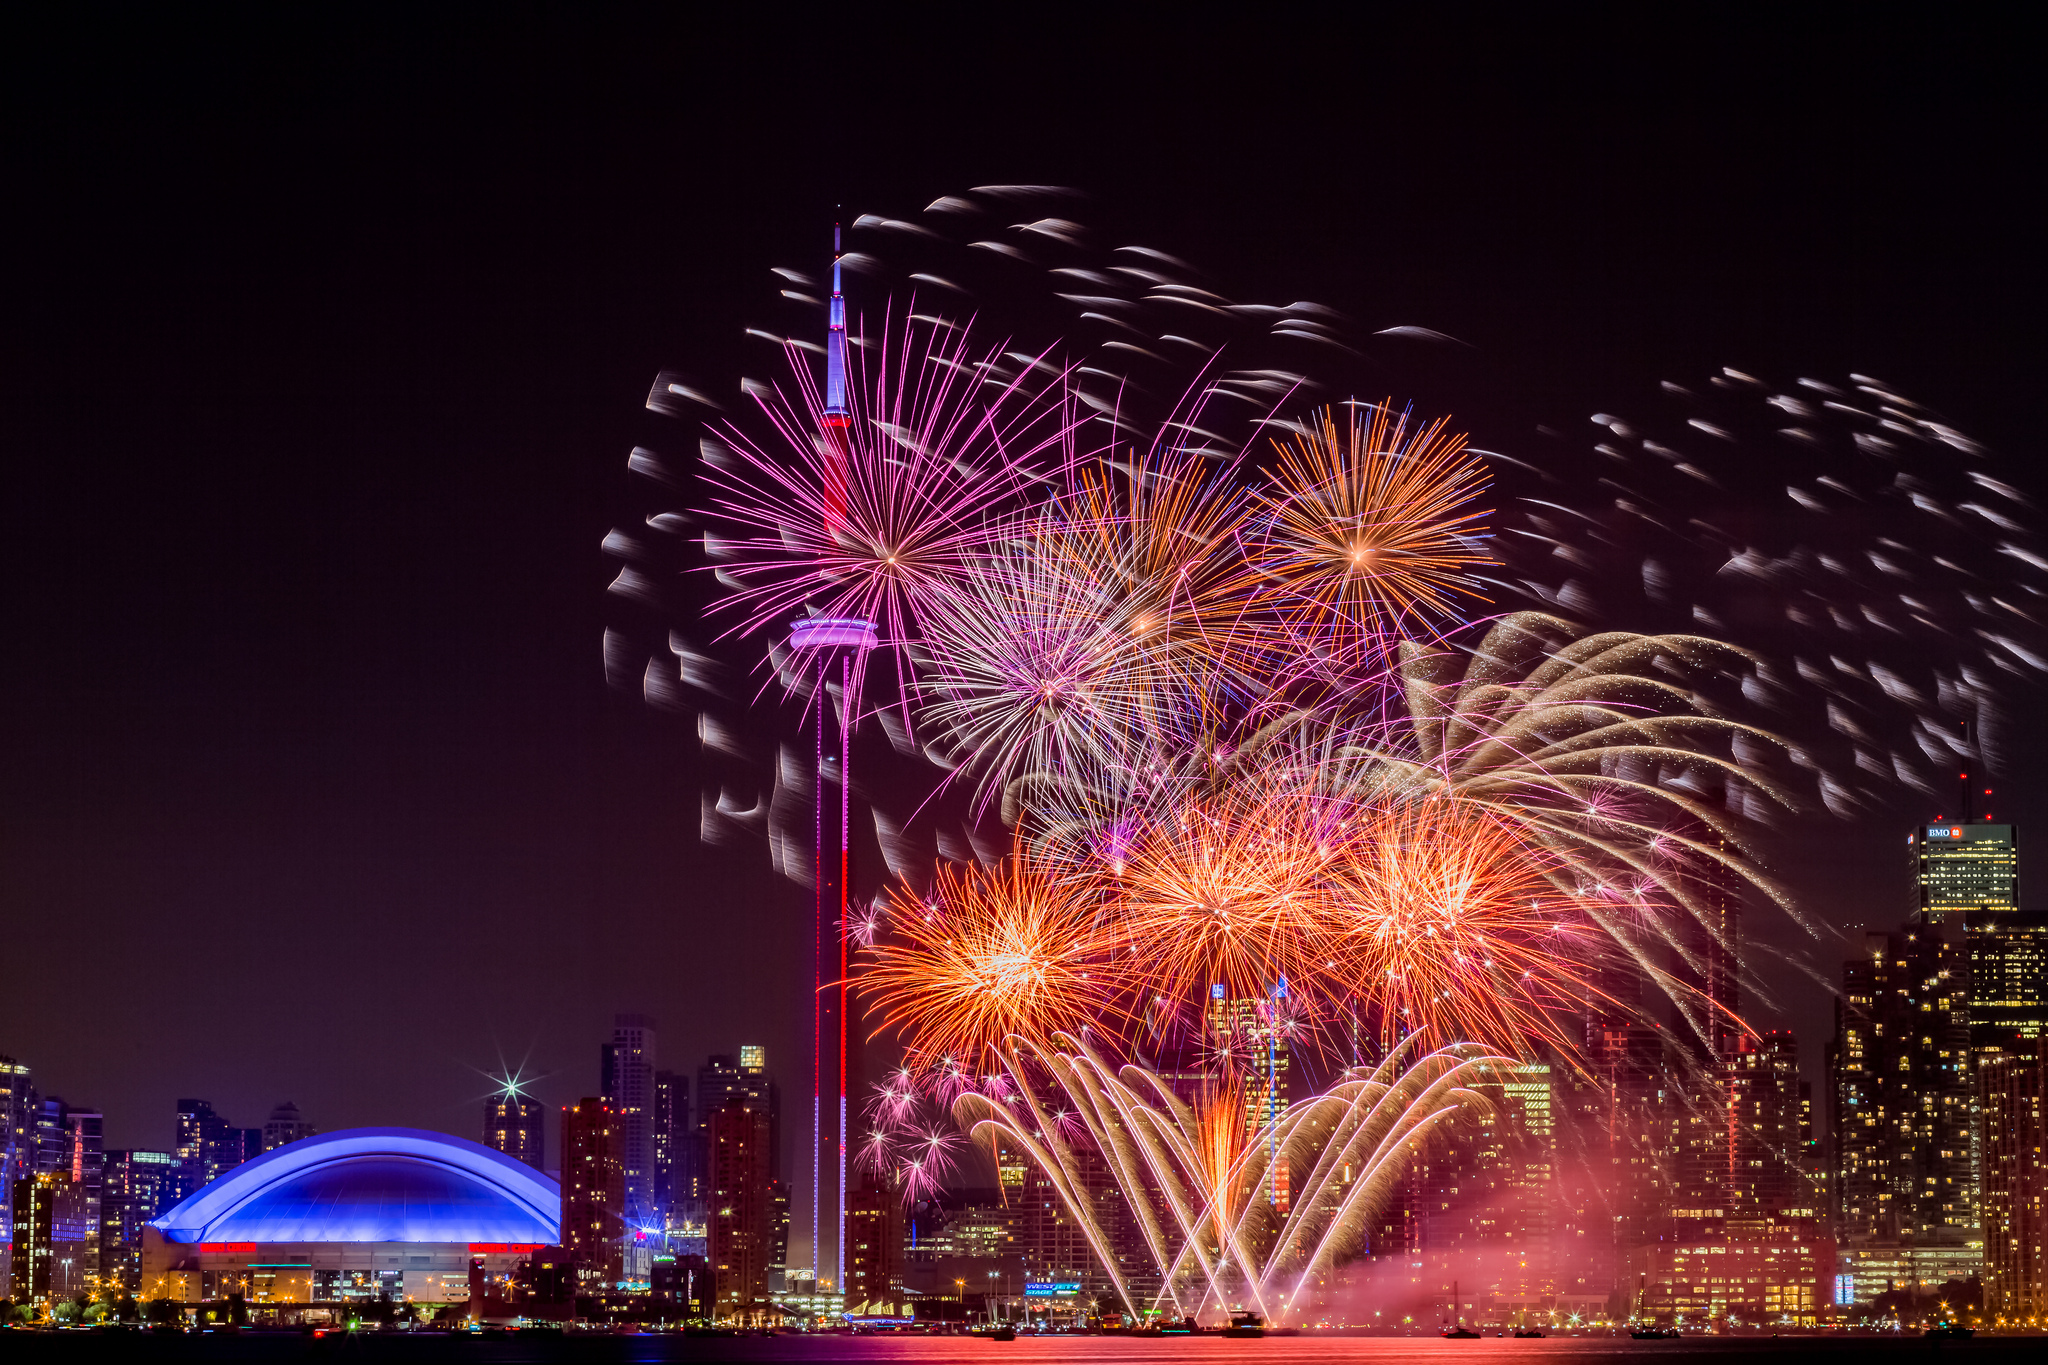 Fireworks on display during Canada Day in Toronto